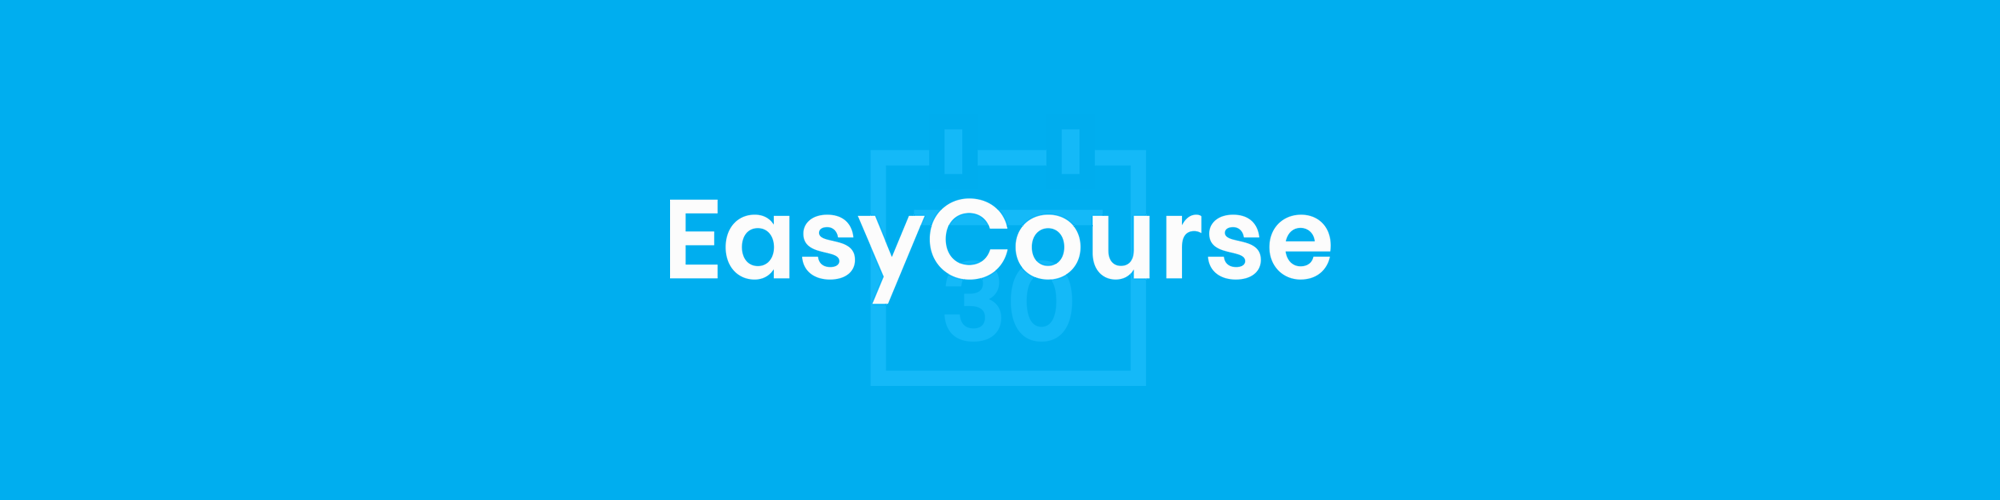 Cover easycourse header short